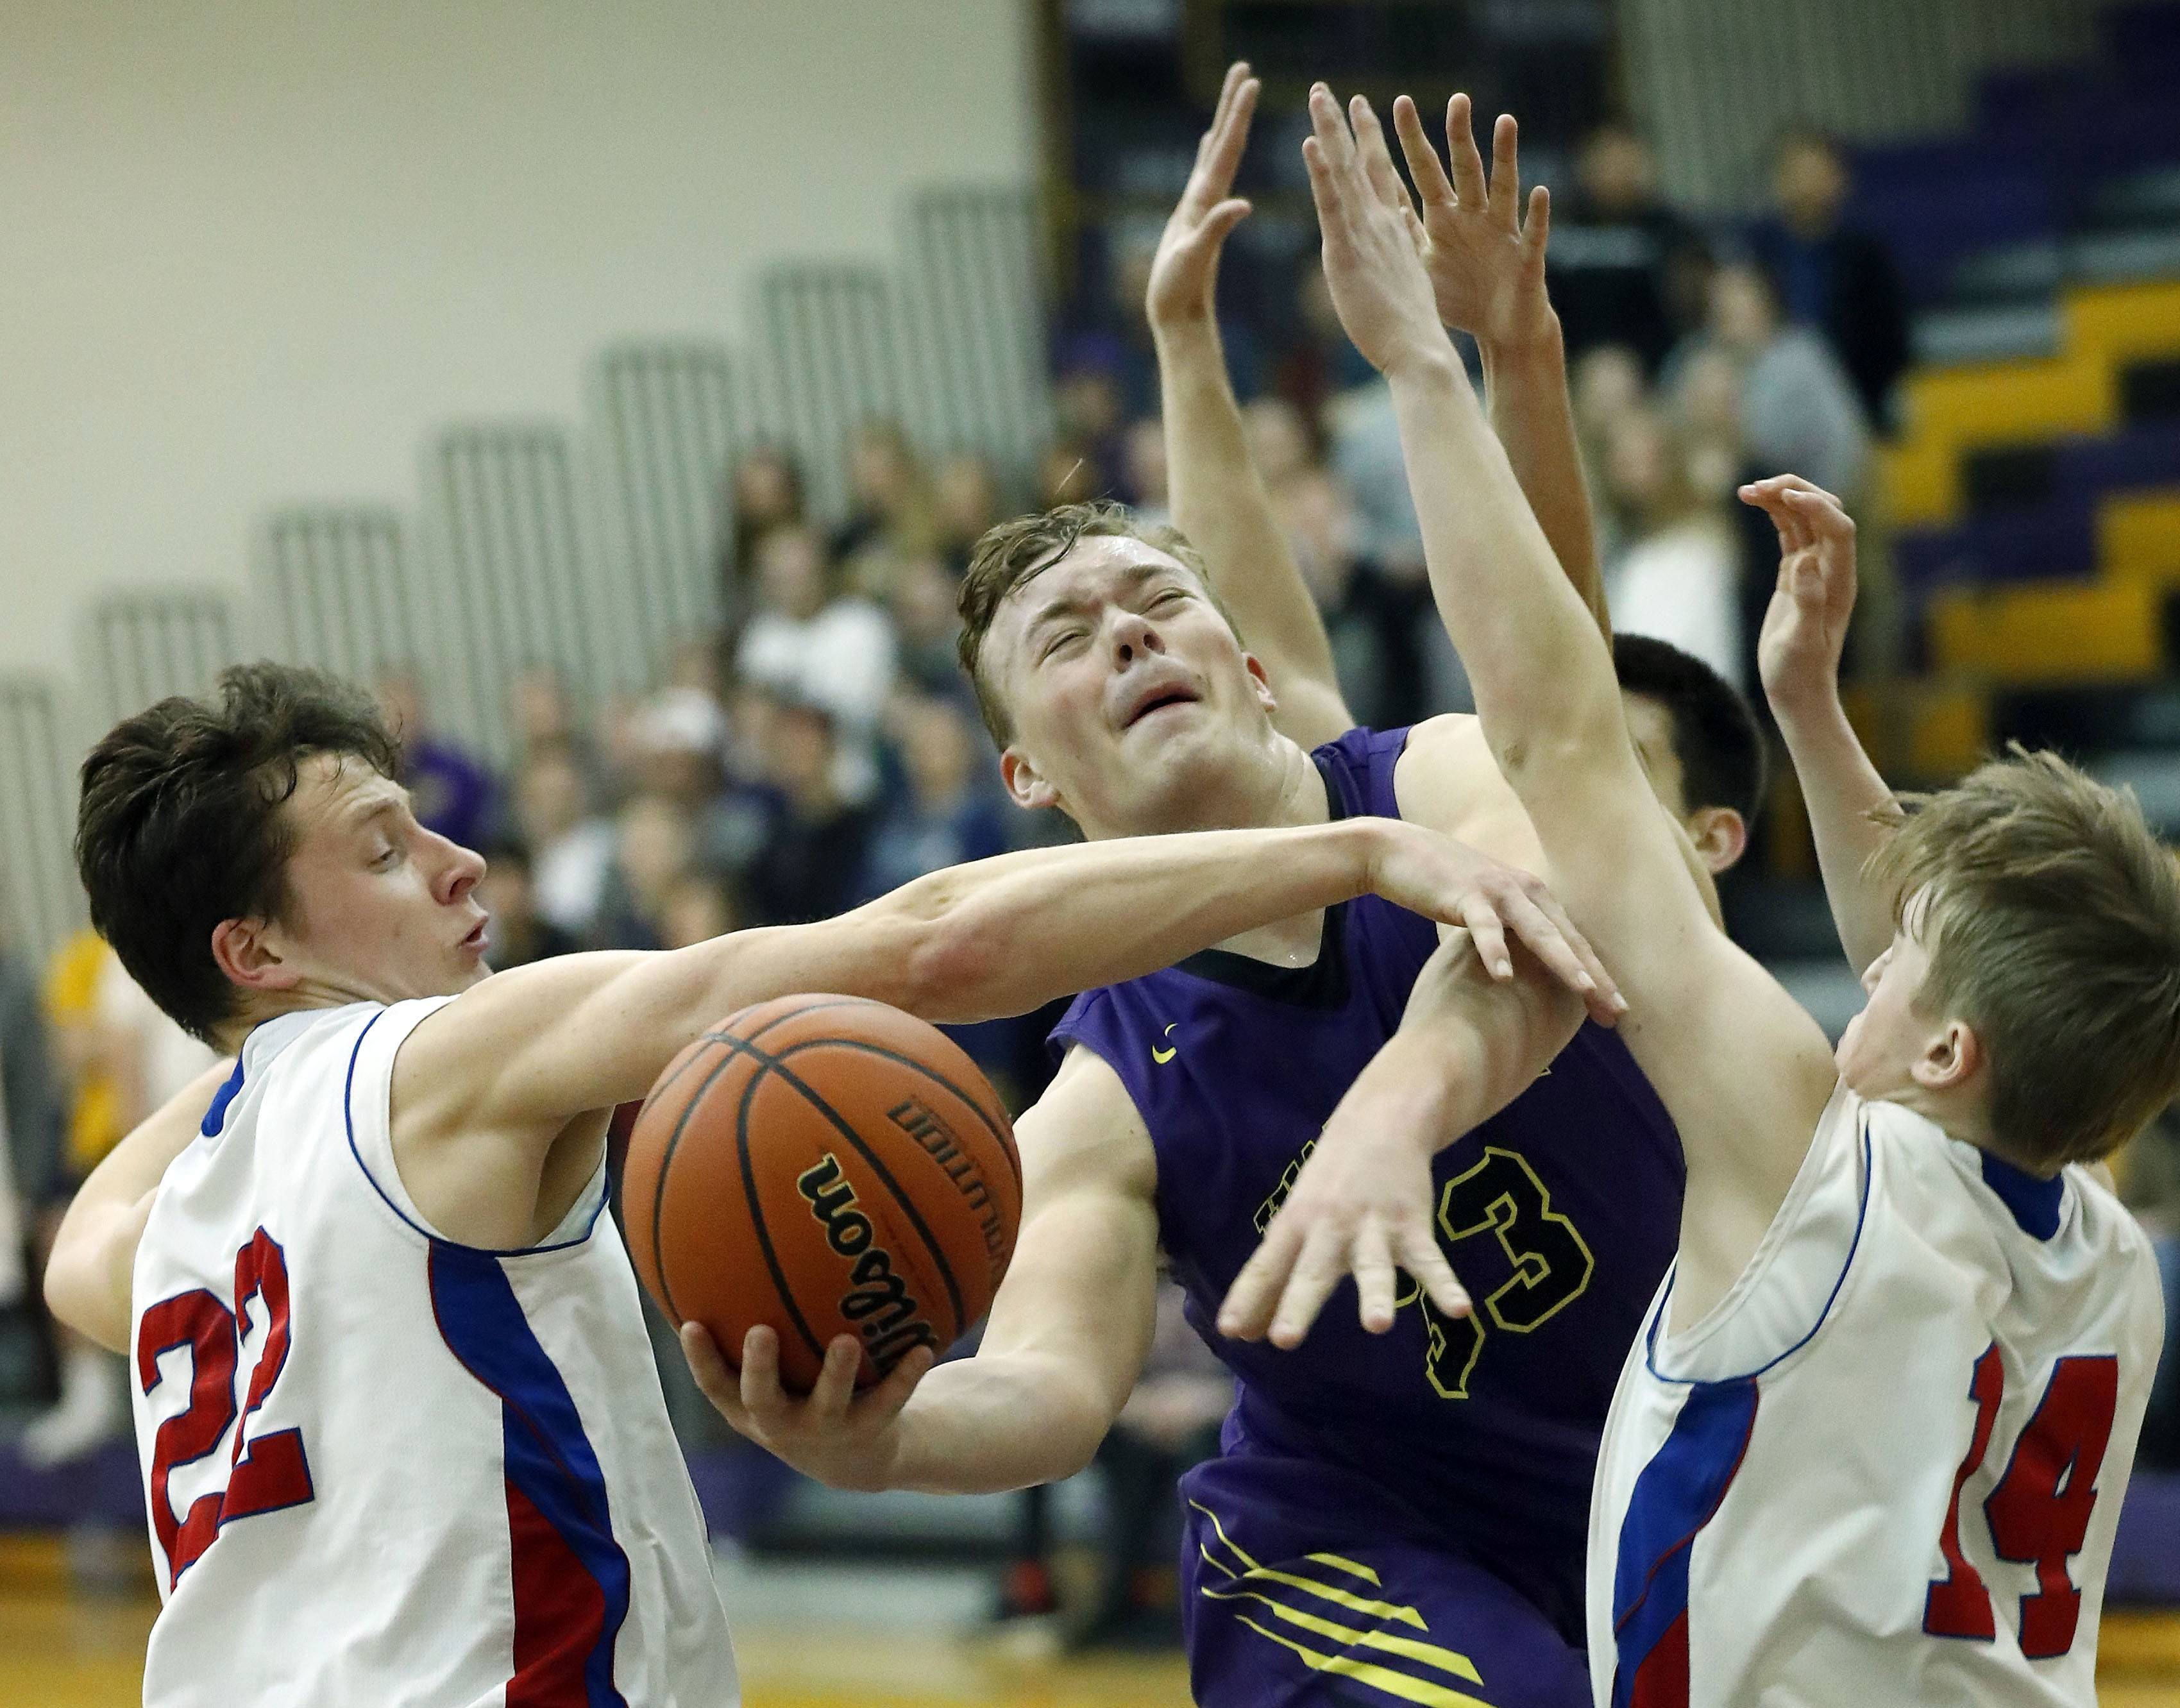 Wauconda's Andrew Nolan, middle, drives on Lakes' Logan McCann (22) and Chance Andell during Class 3A regional semifinal play Tuesday at Wauconda.